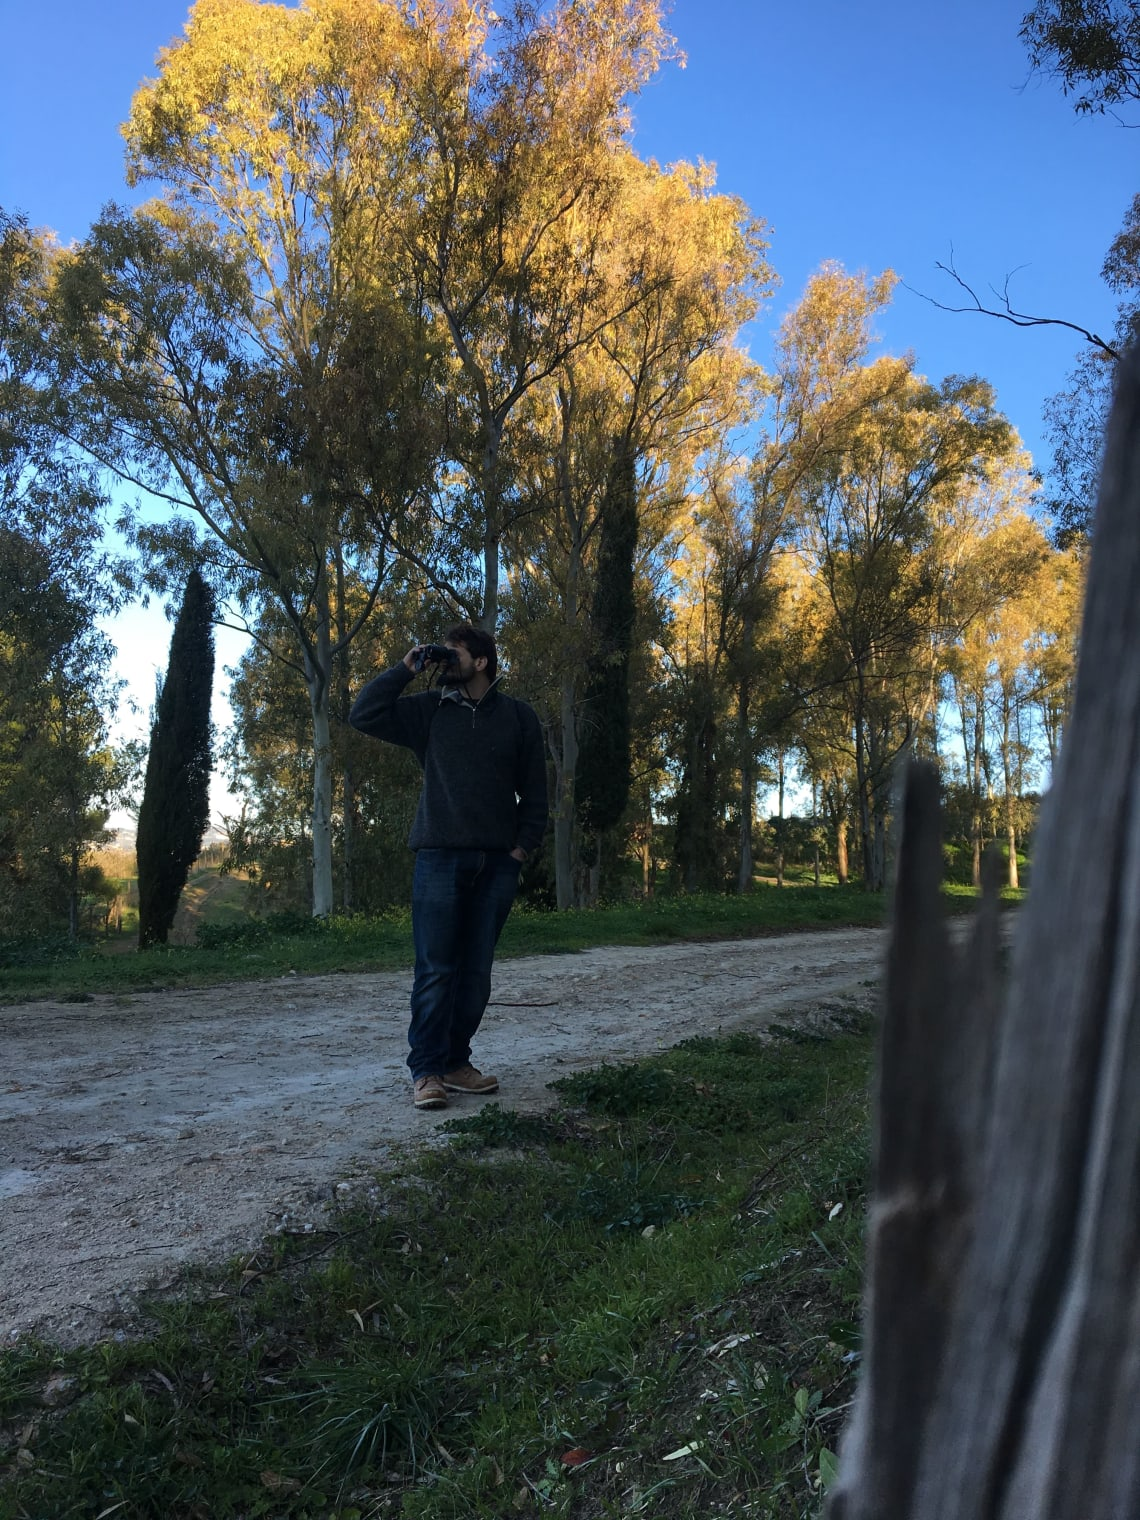 Birdwatching in the Sicilian countryside